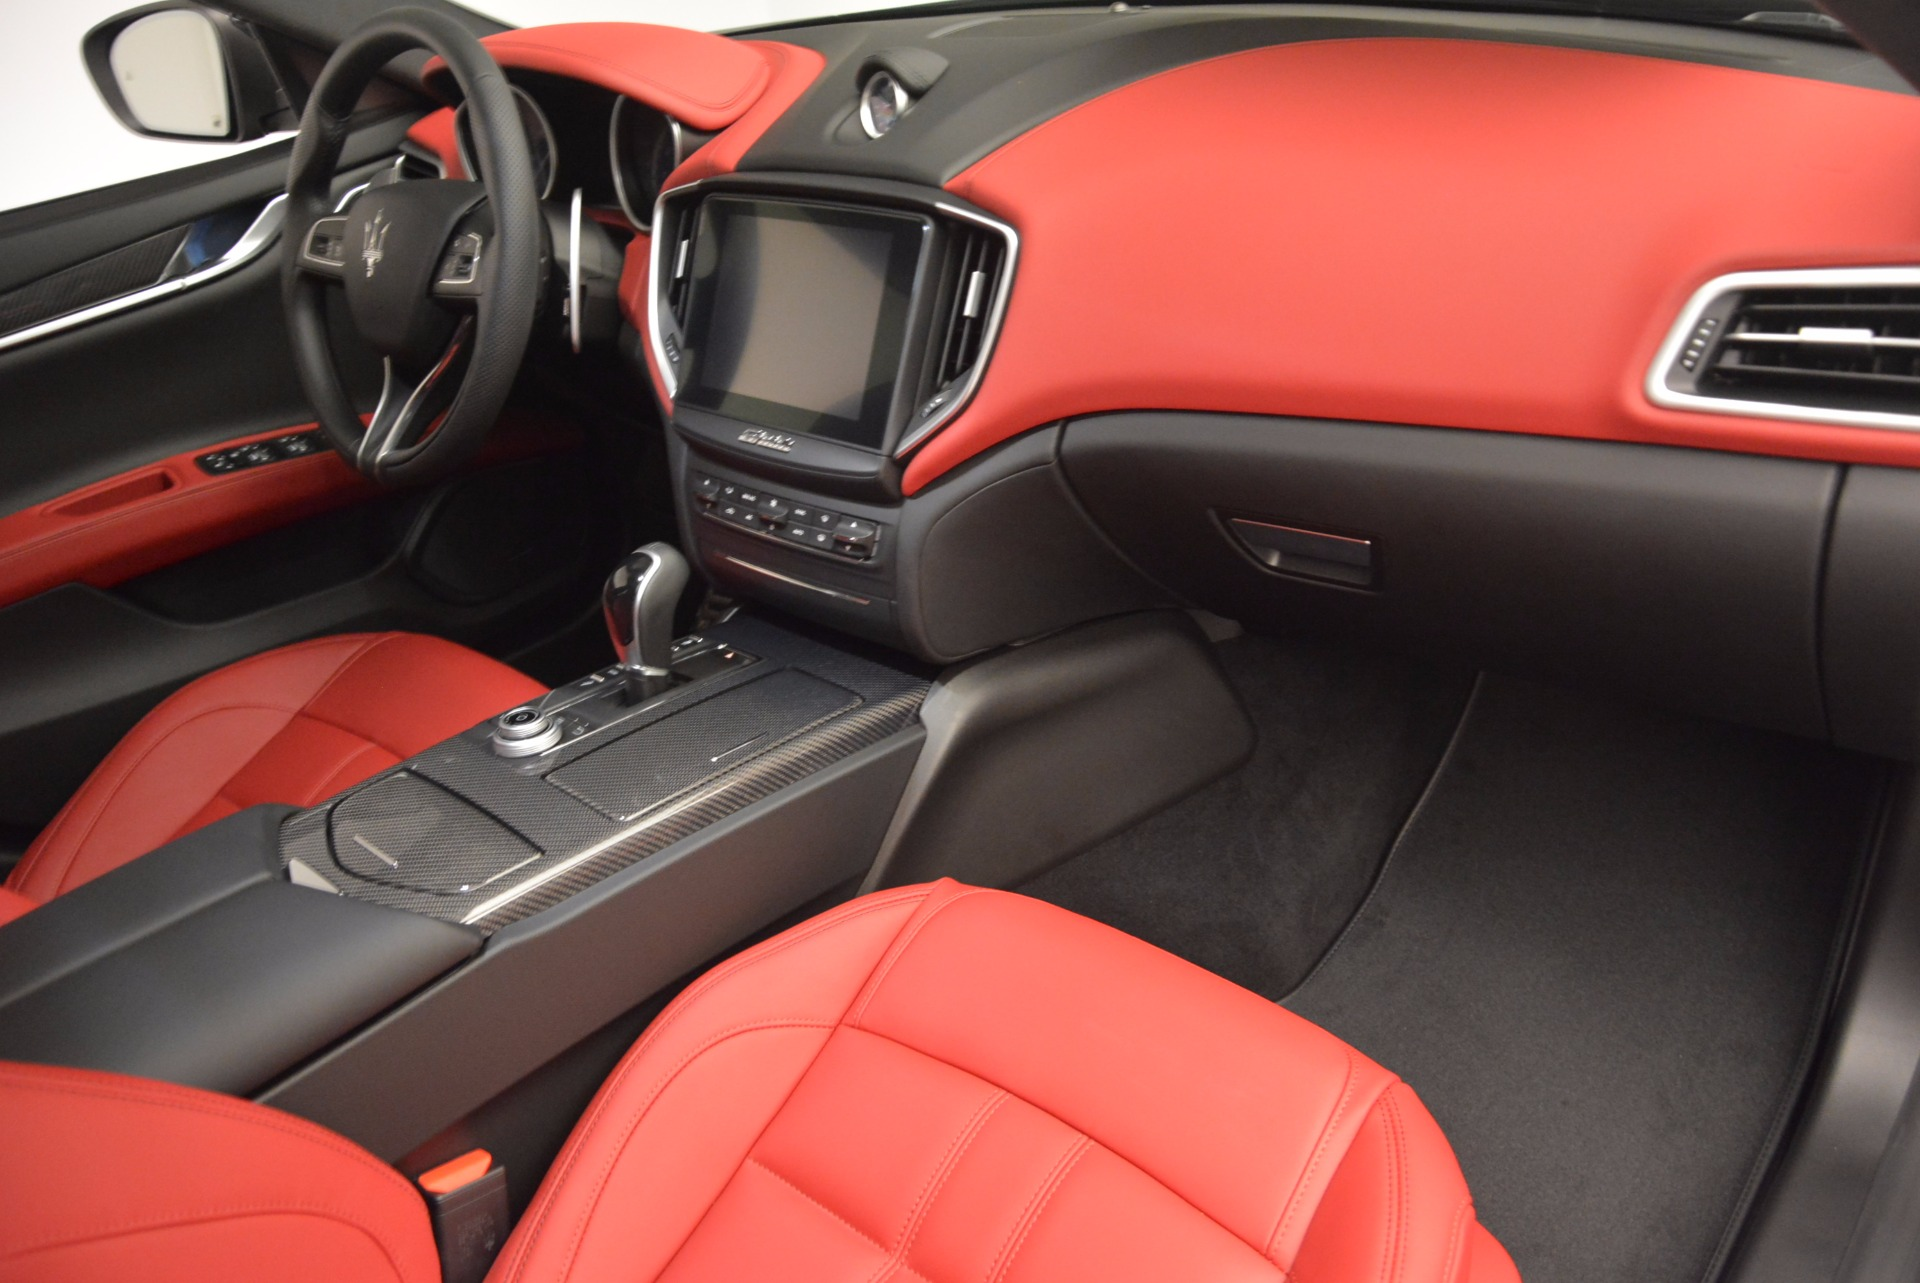 Used 2017 Maserati Ghibli S Q4 For Sale In Westport, CT 1121_p15